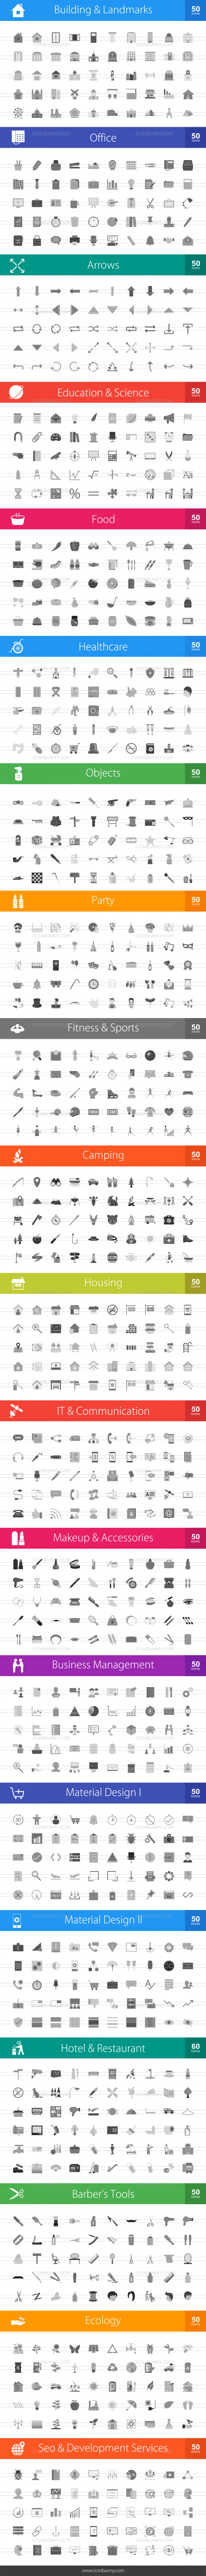 1010 Greyscale Icons Bundle - Preview - IconBunny